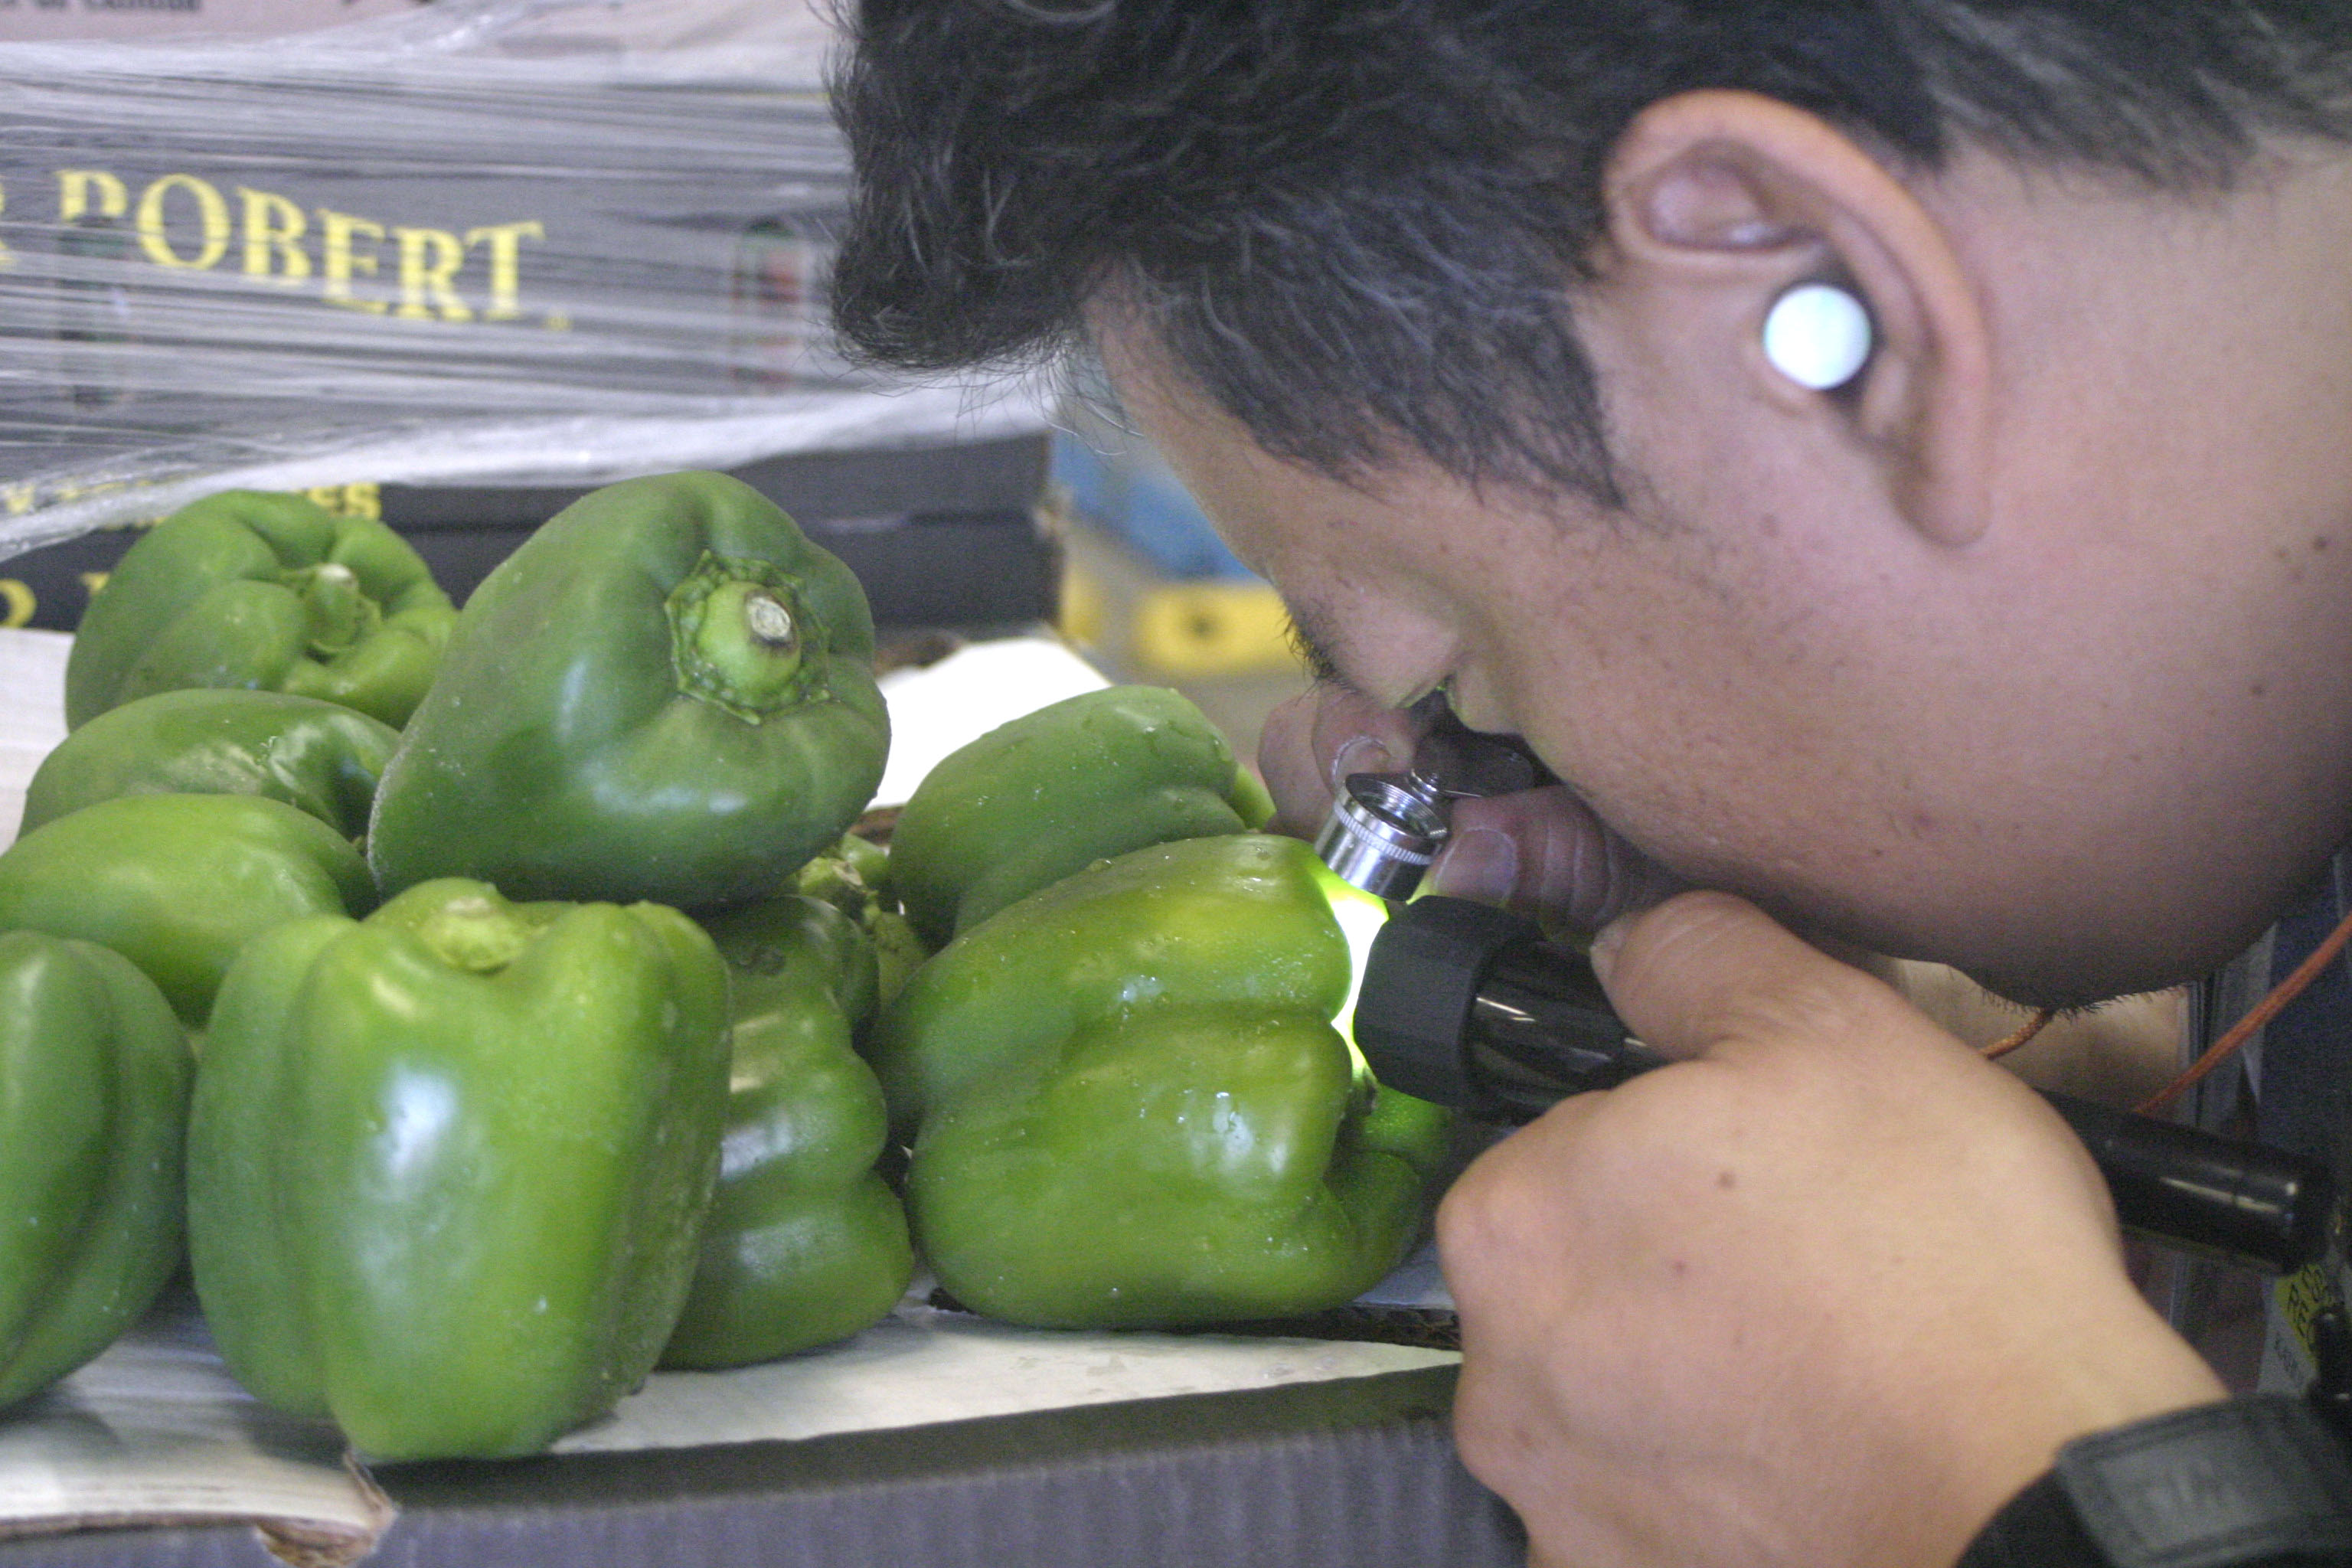 Photograph of inspector with magnifyer looking at bell pepper.